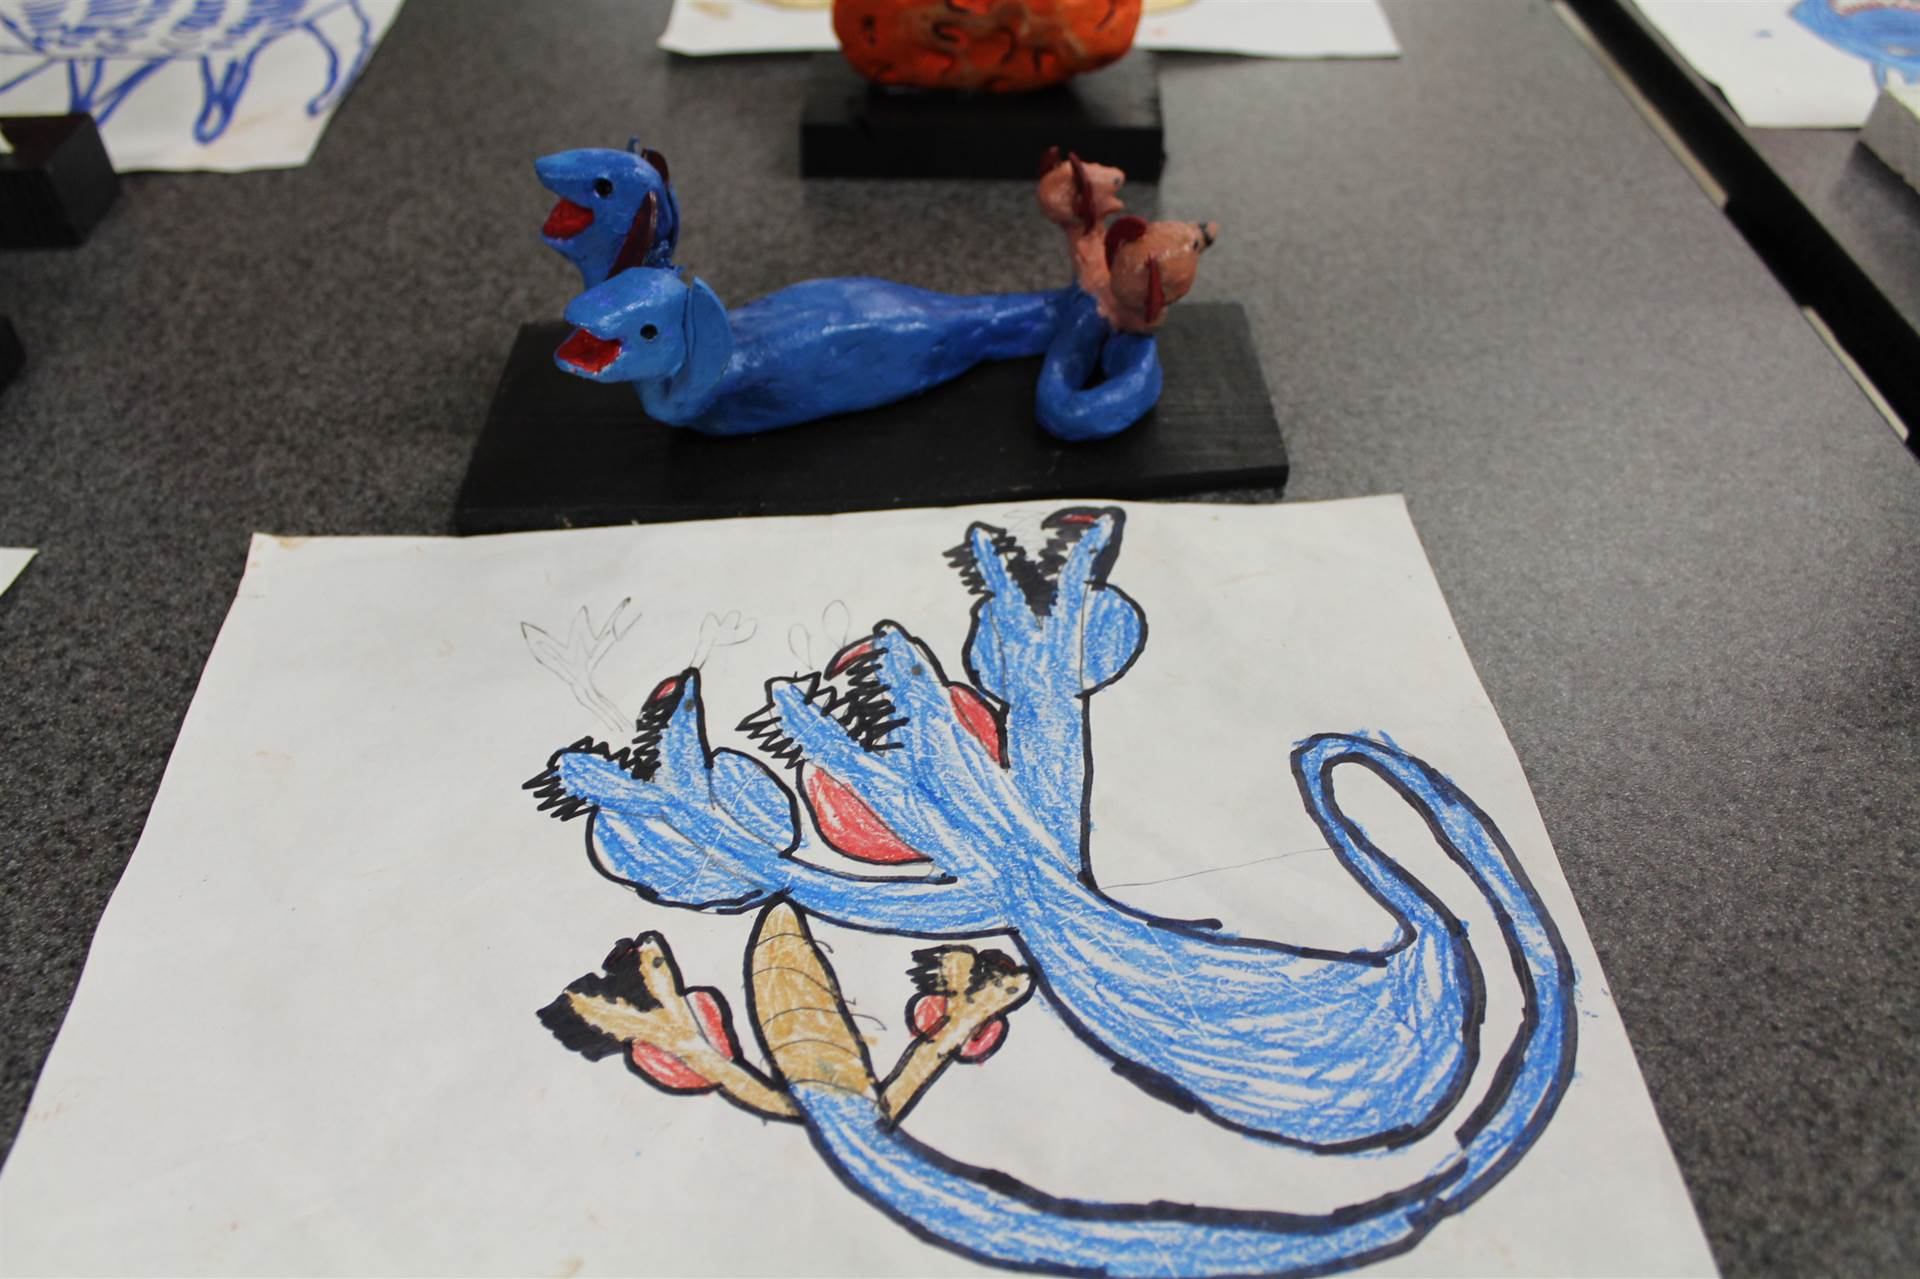 monster 3 d sculpture next to drawn picture 23